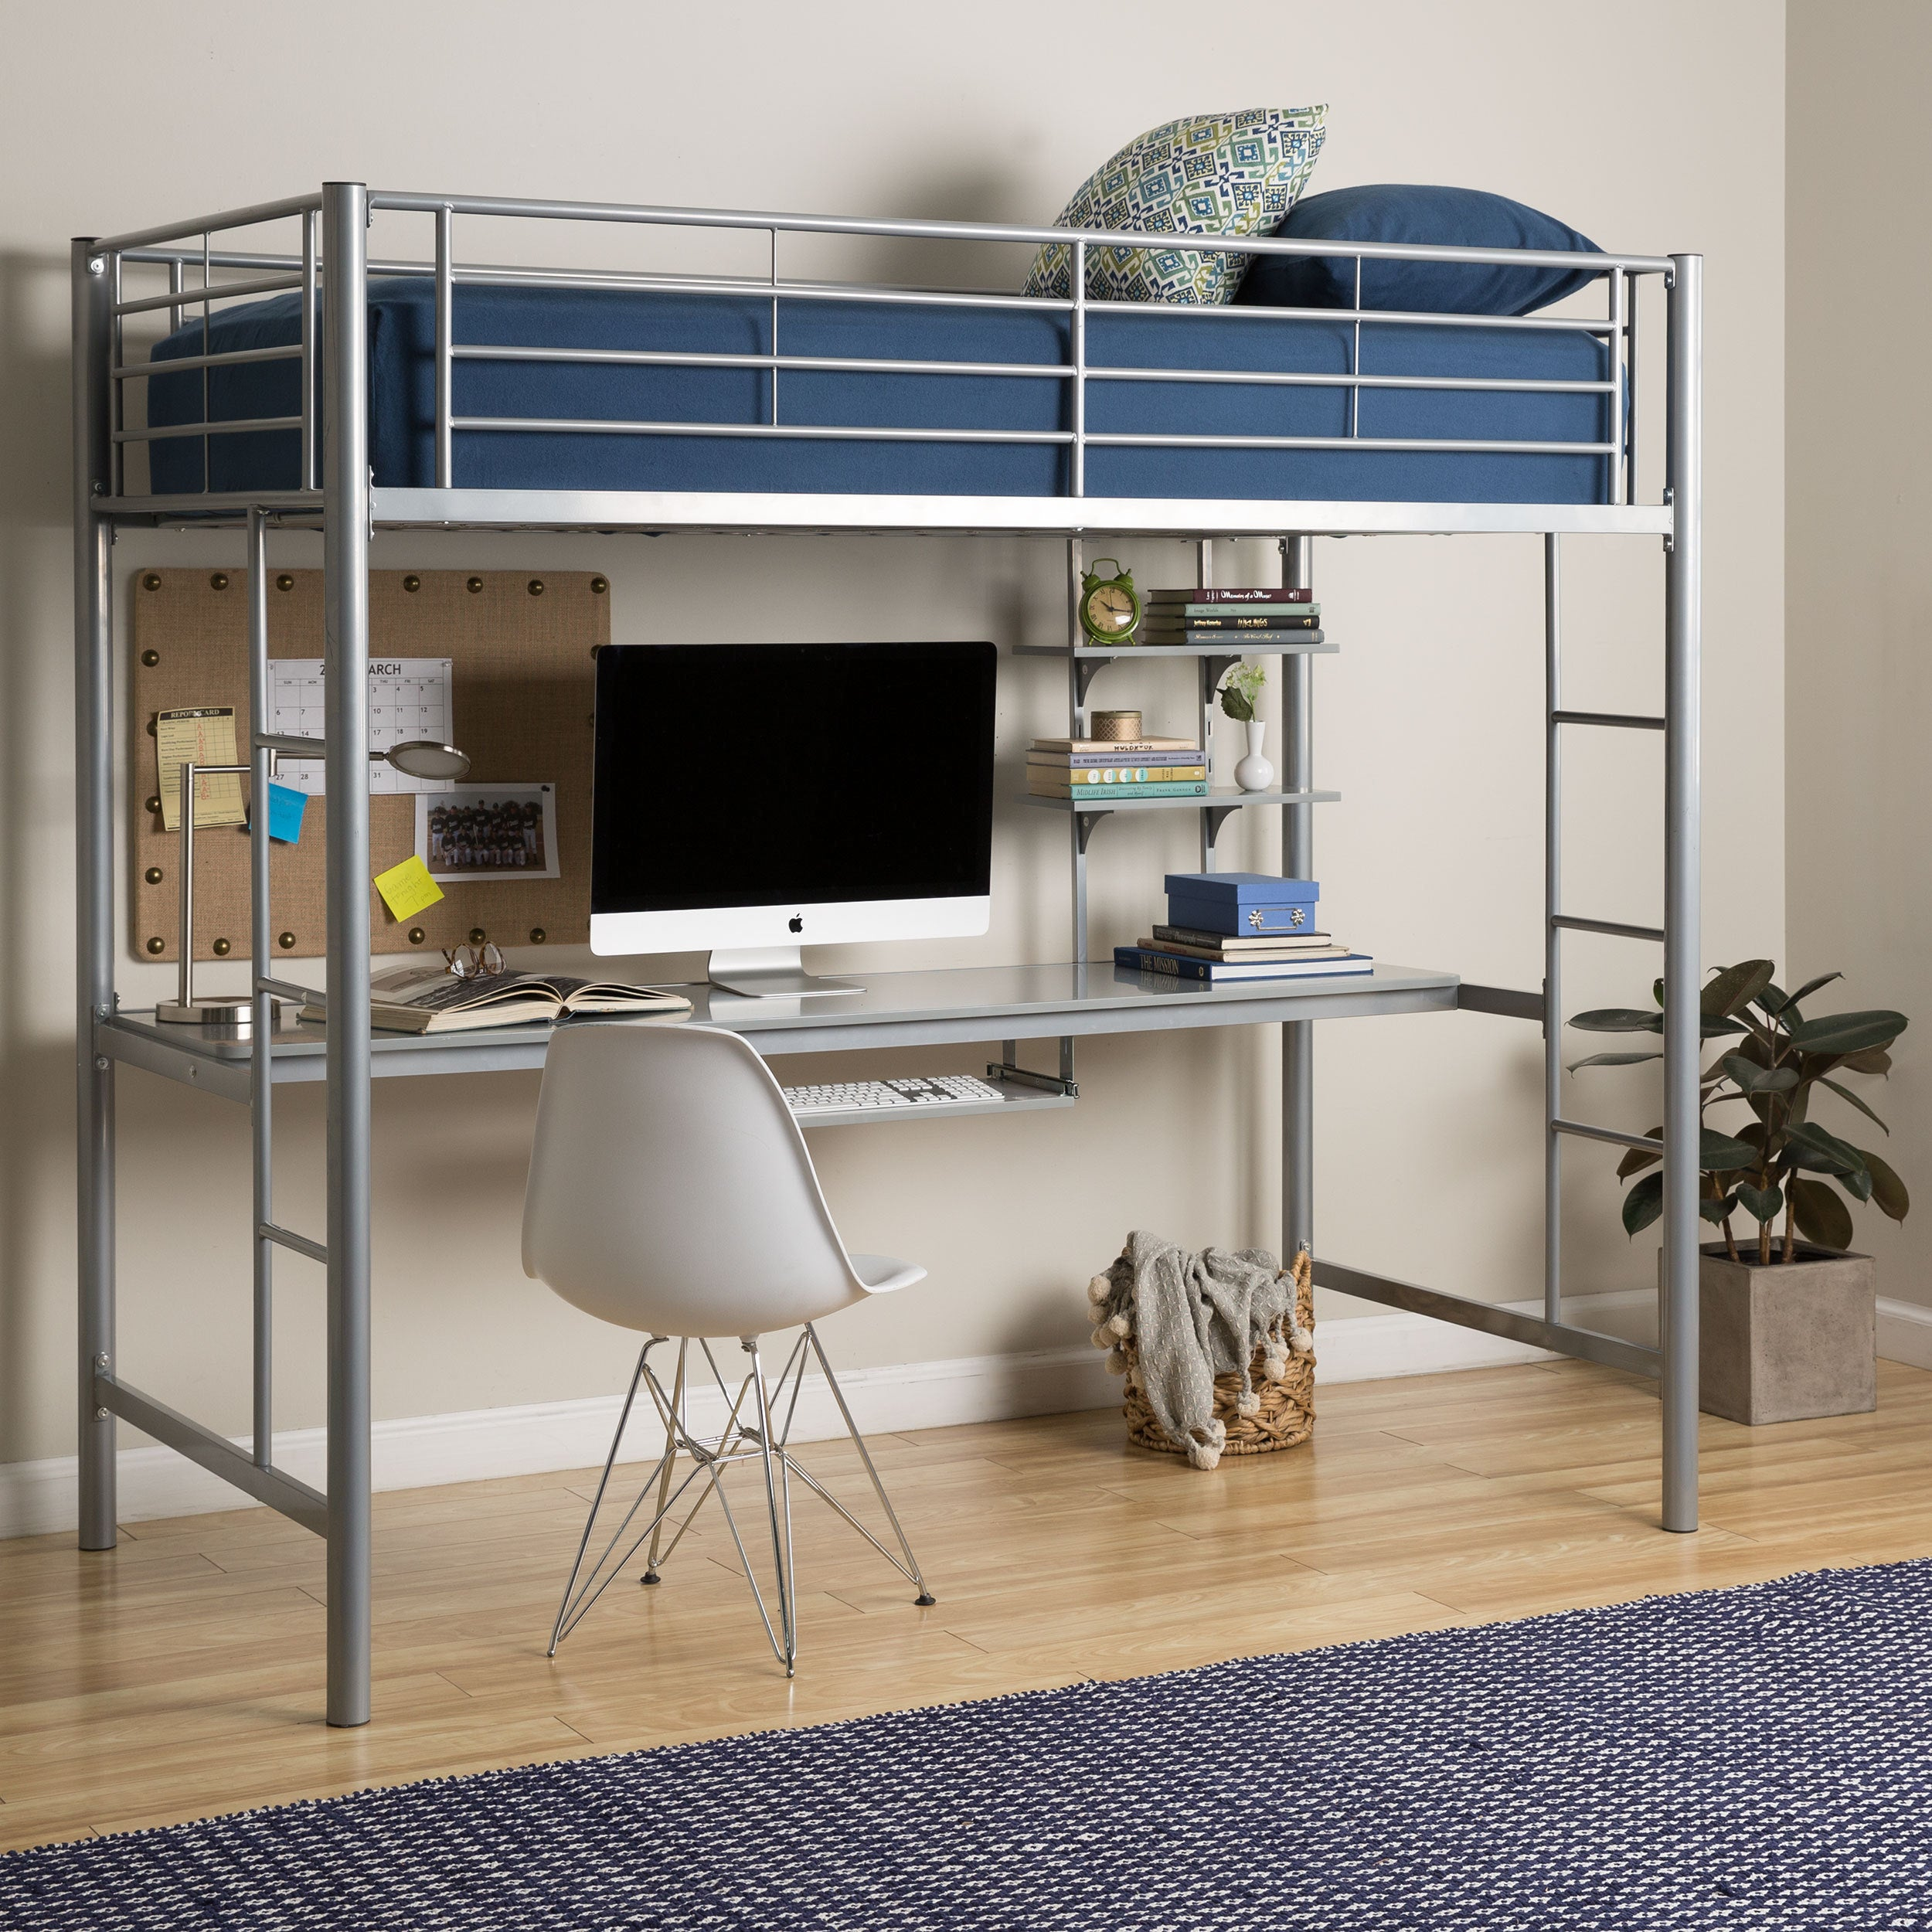 How To Buy A Metal Loft Bed With Desk